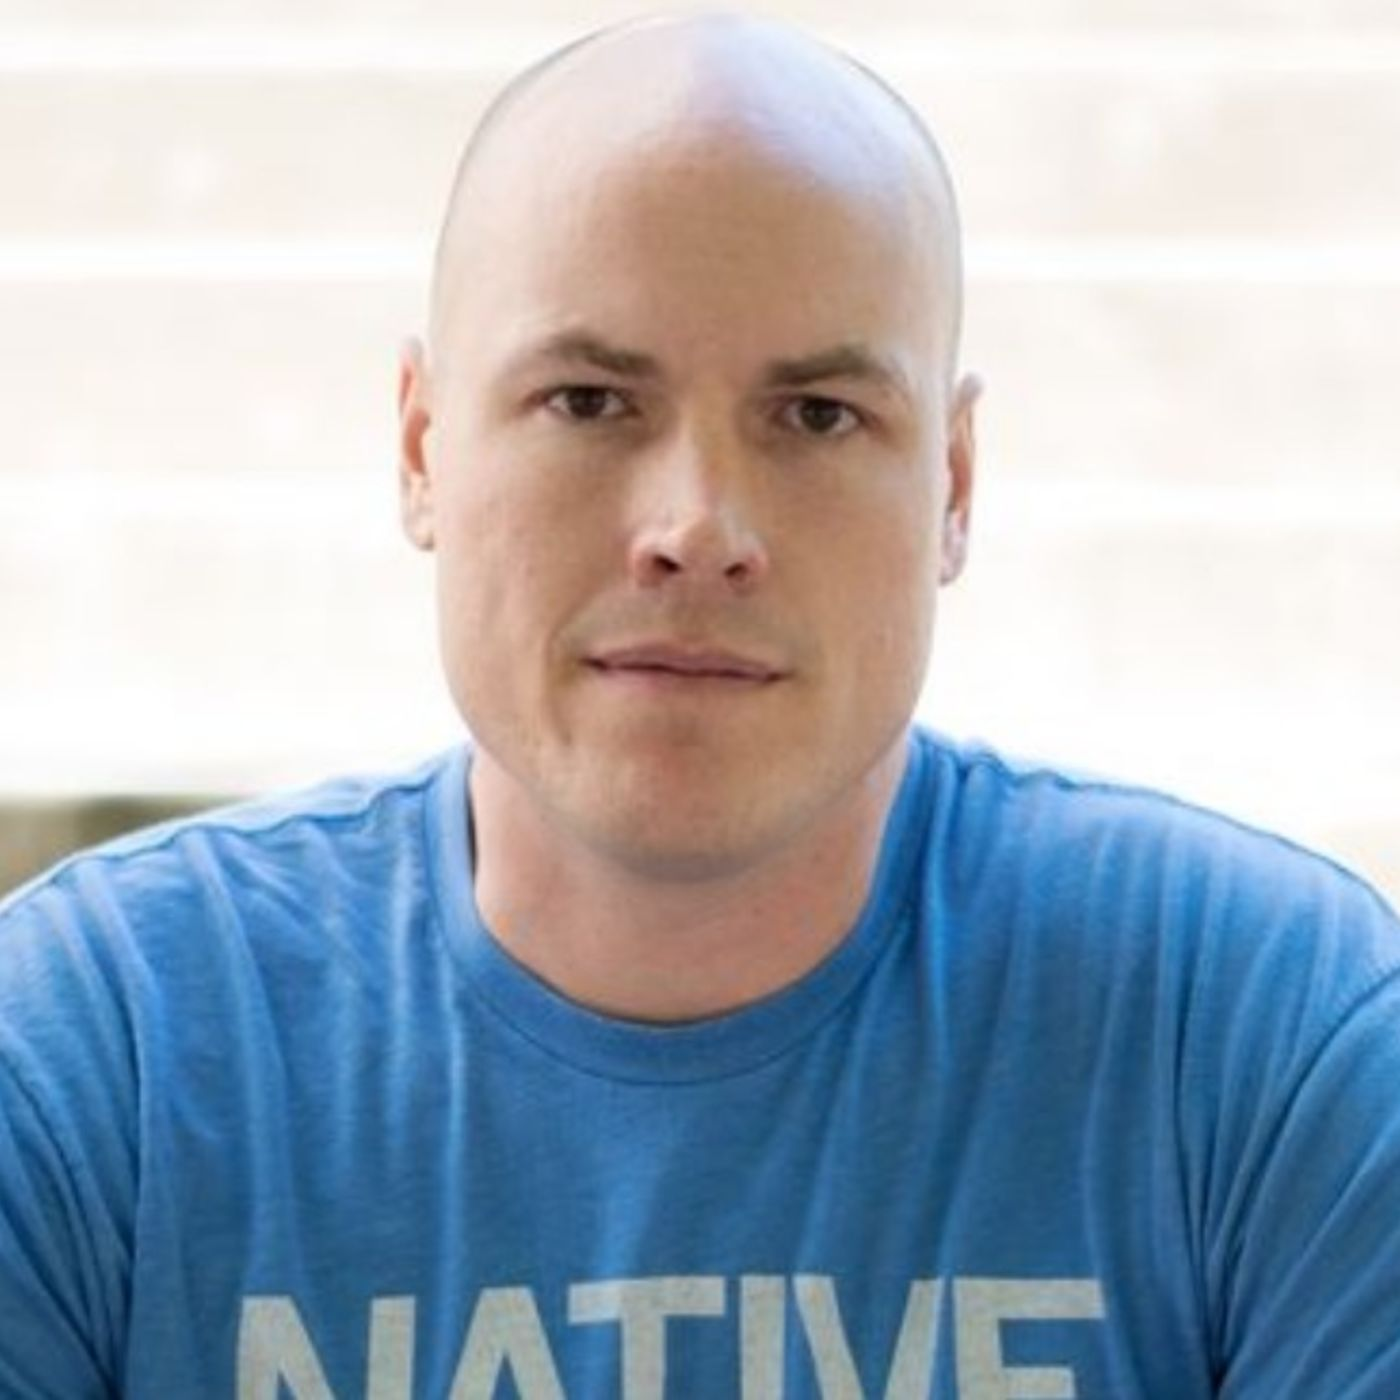 Flyover Folk Episode 18: Progressive Rural Priorities Ahead of the 2020 Election With JD Scholten